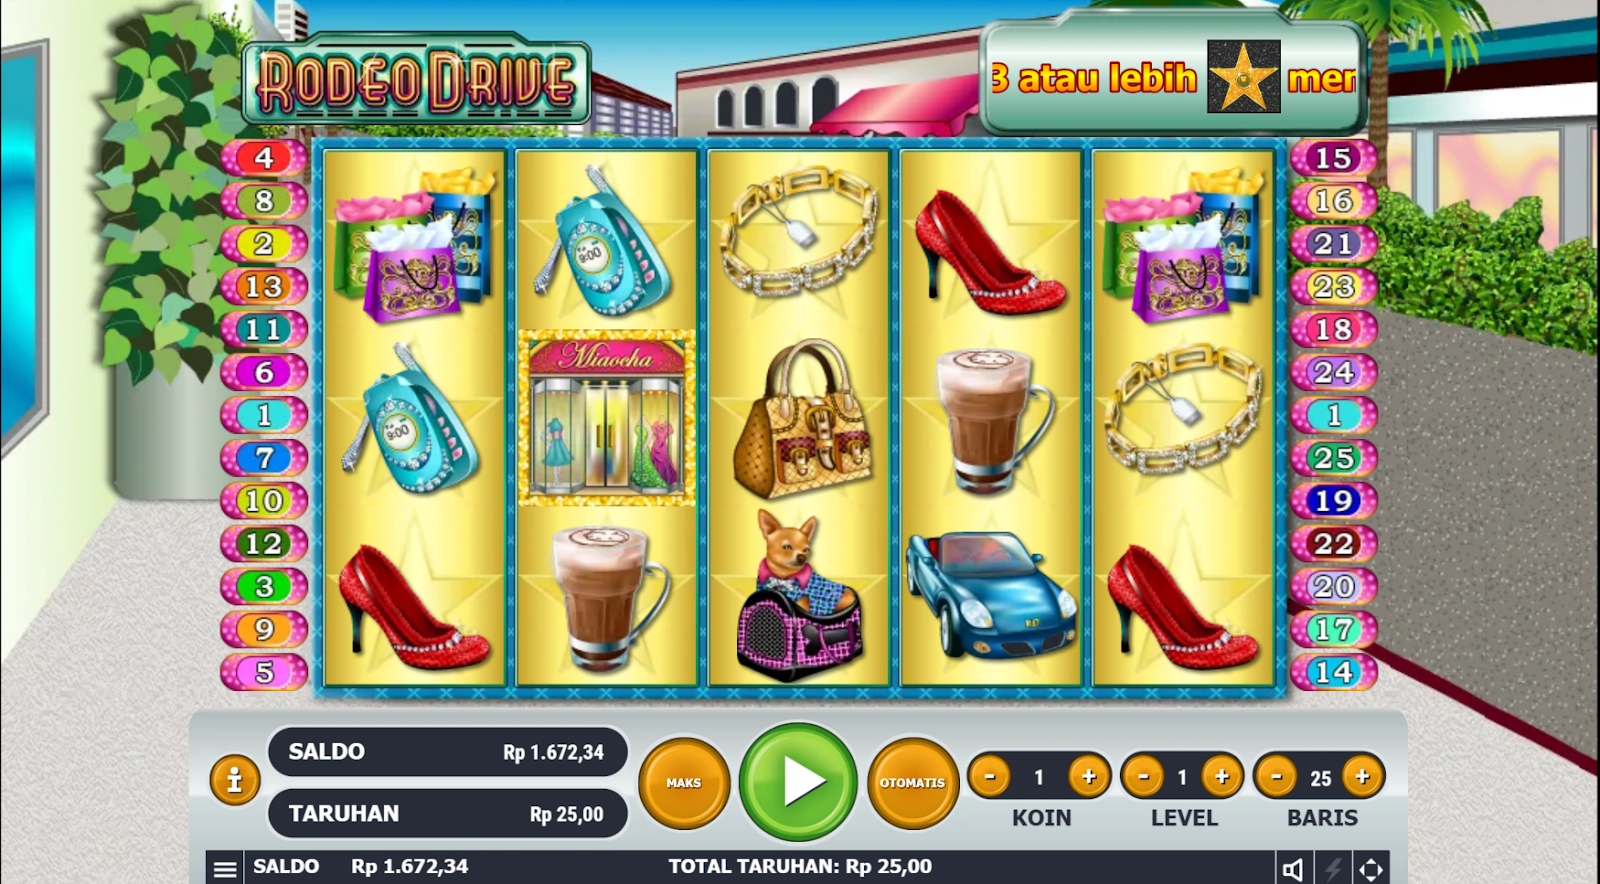 Rodeo Drive Slot Game Review